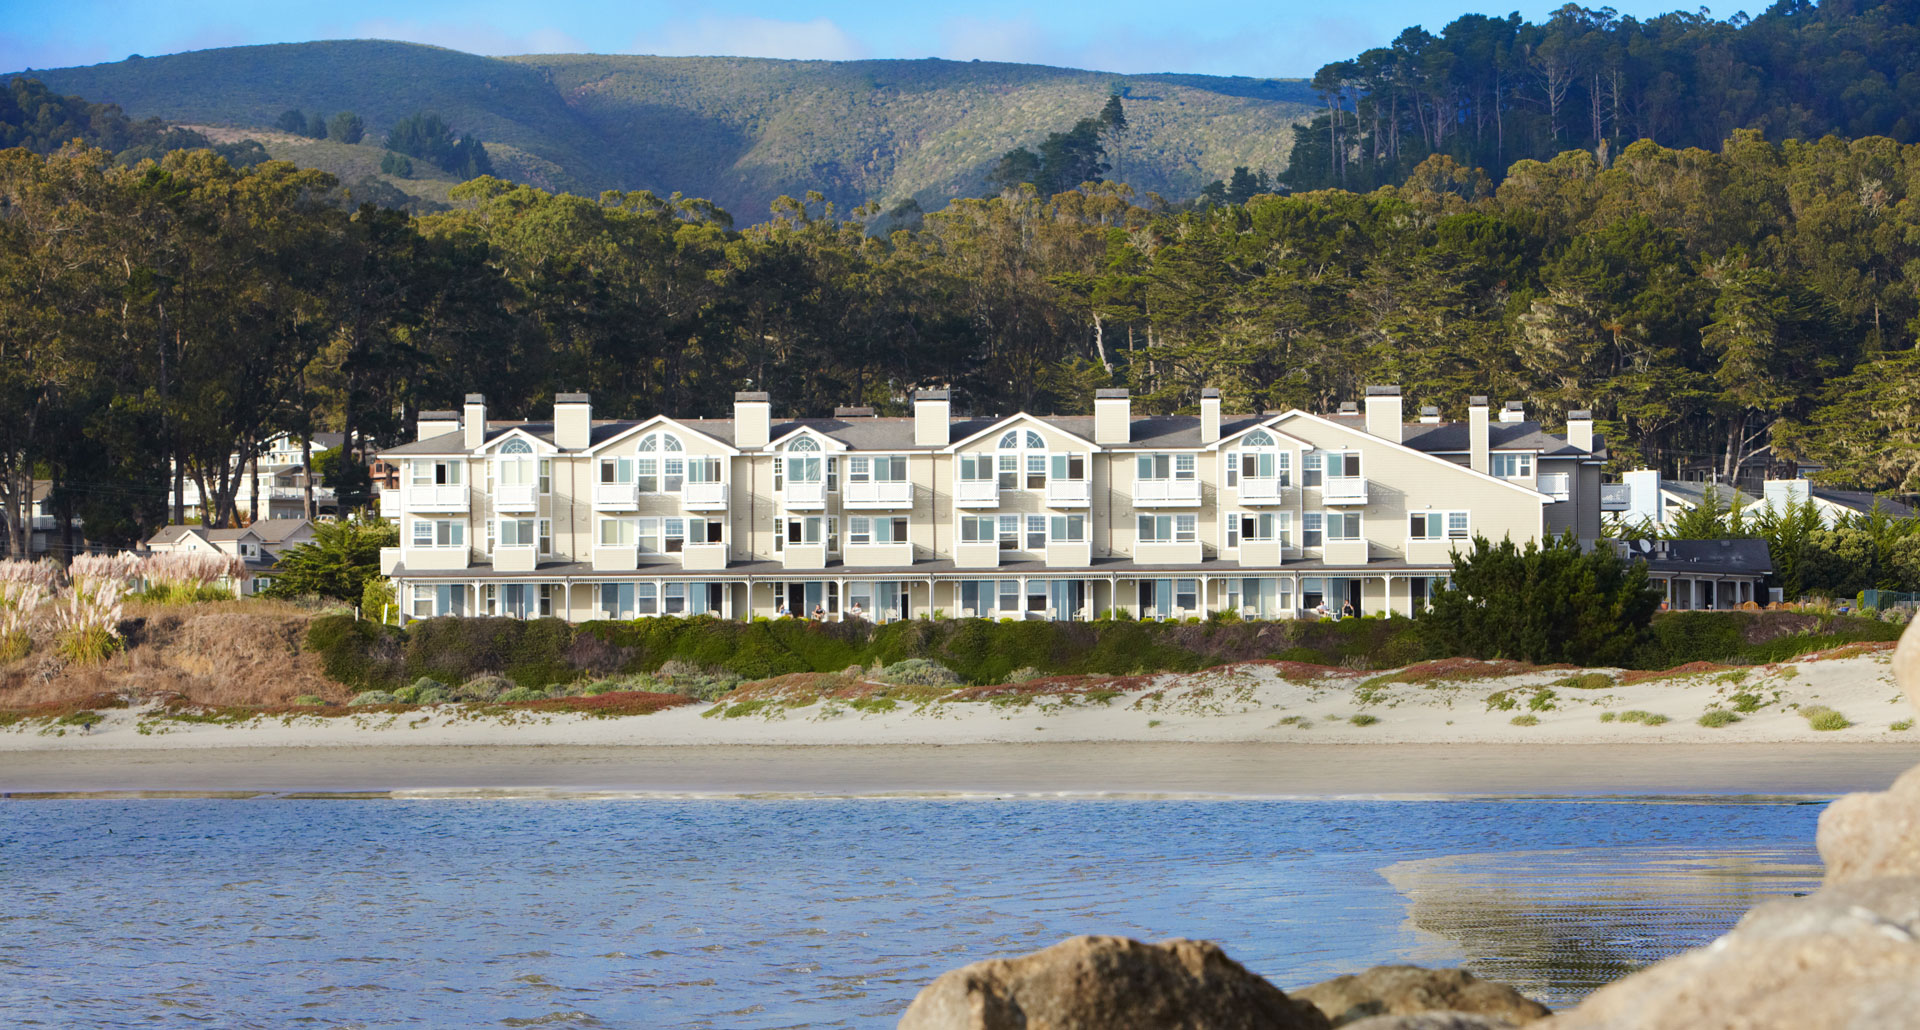 Beach House Half Moon Bay - boutique hotel in Half Moon Bay